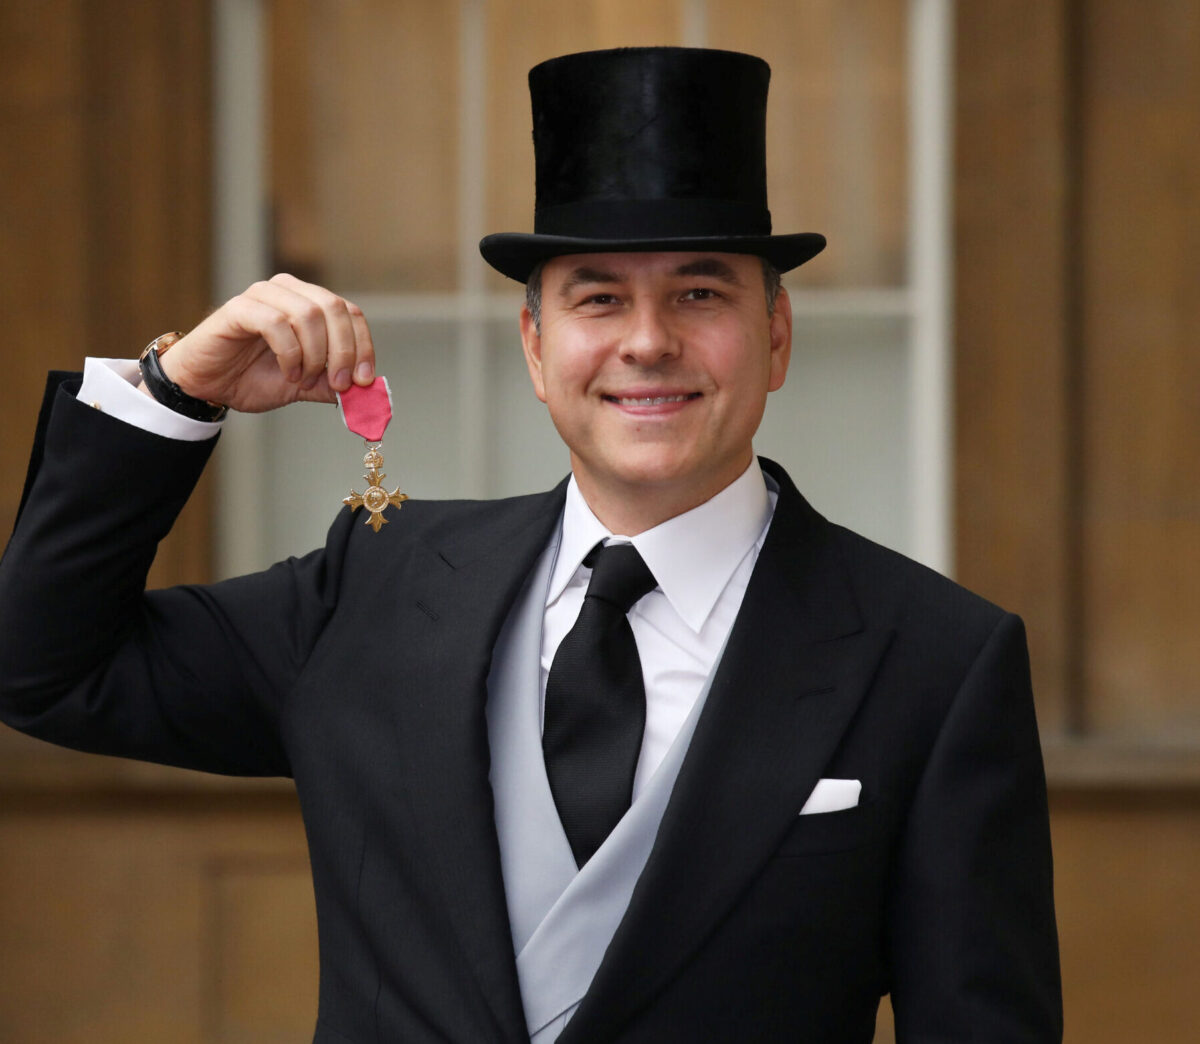 David Walliams and Martin Clunes settle phone hacking claims against Mirror publisher